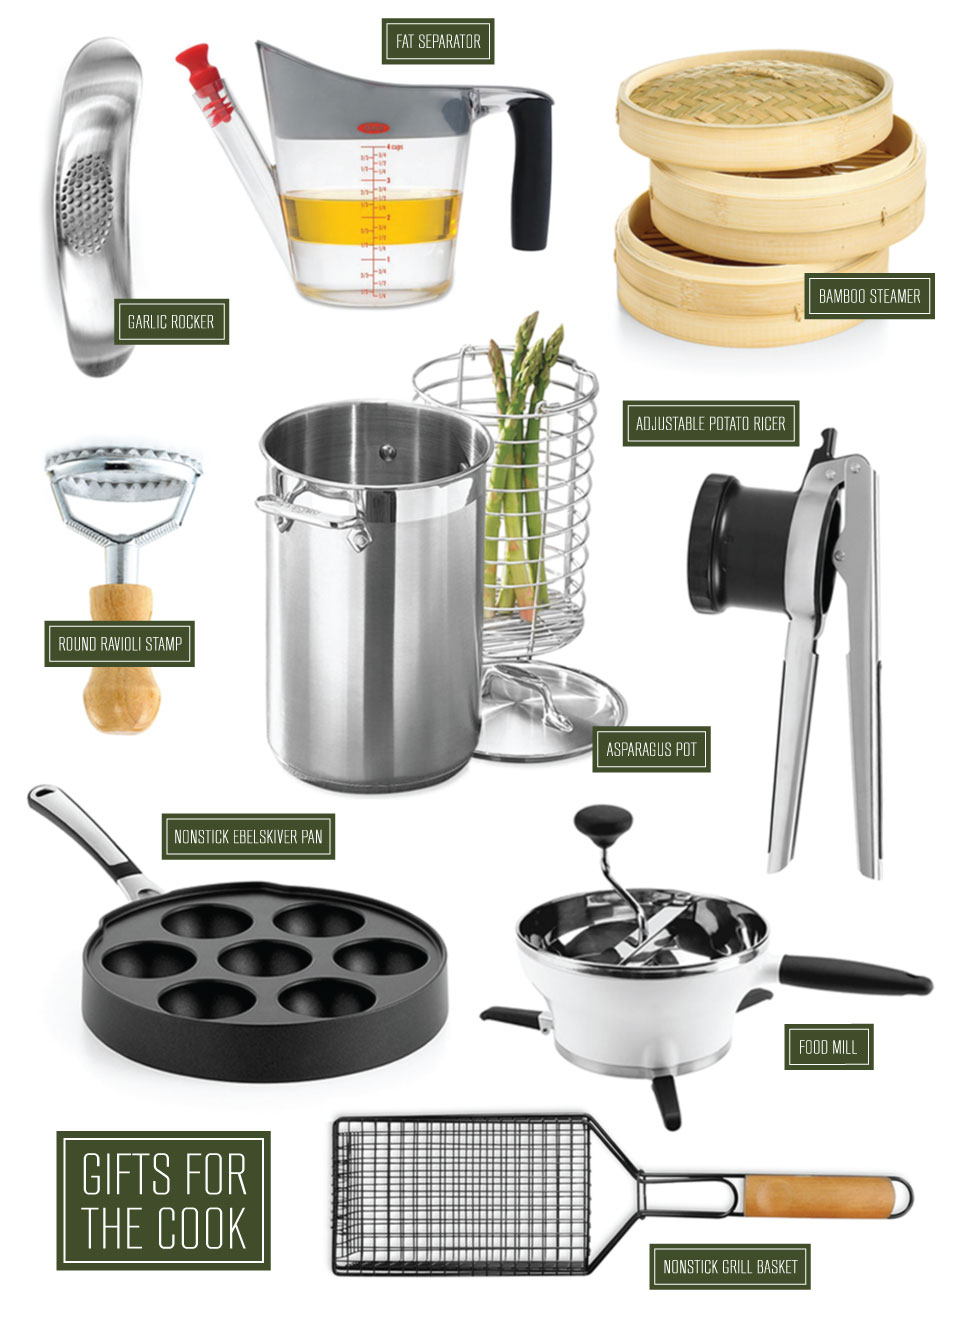 Cooking Utensils Small Kitchen Liances And Gadgets Are Always Great Gift Ideas For Those Who Love To Cook